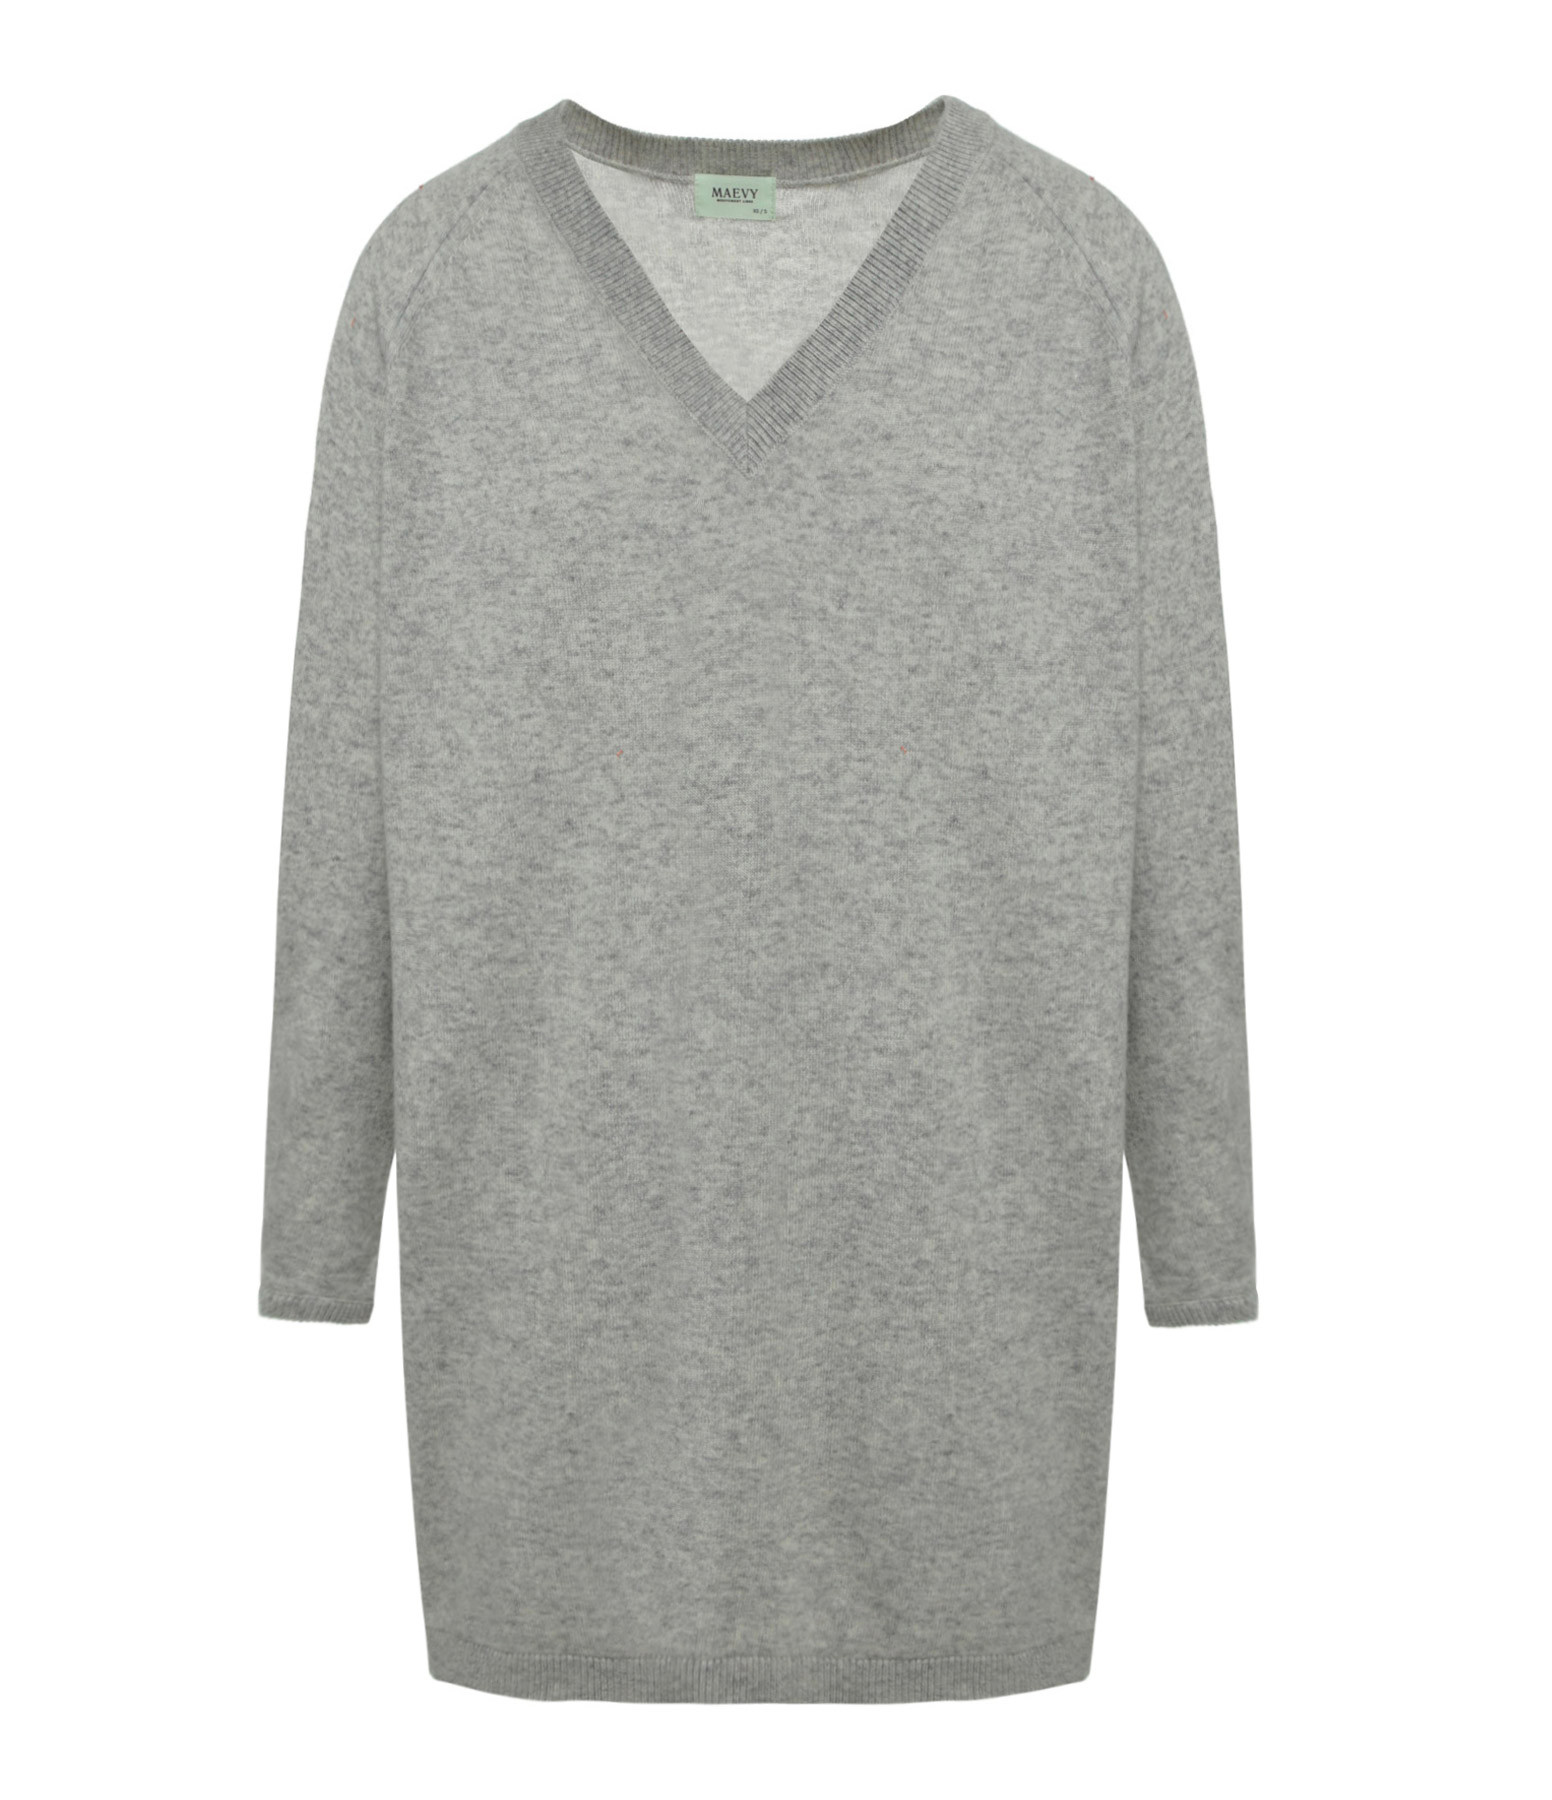 MAEVY CONCEPT - Robe Absolu Cachemire Laine Gris Clair